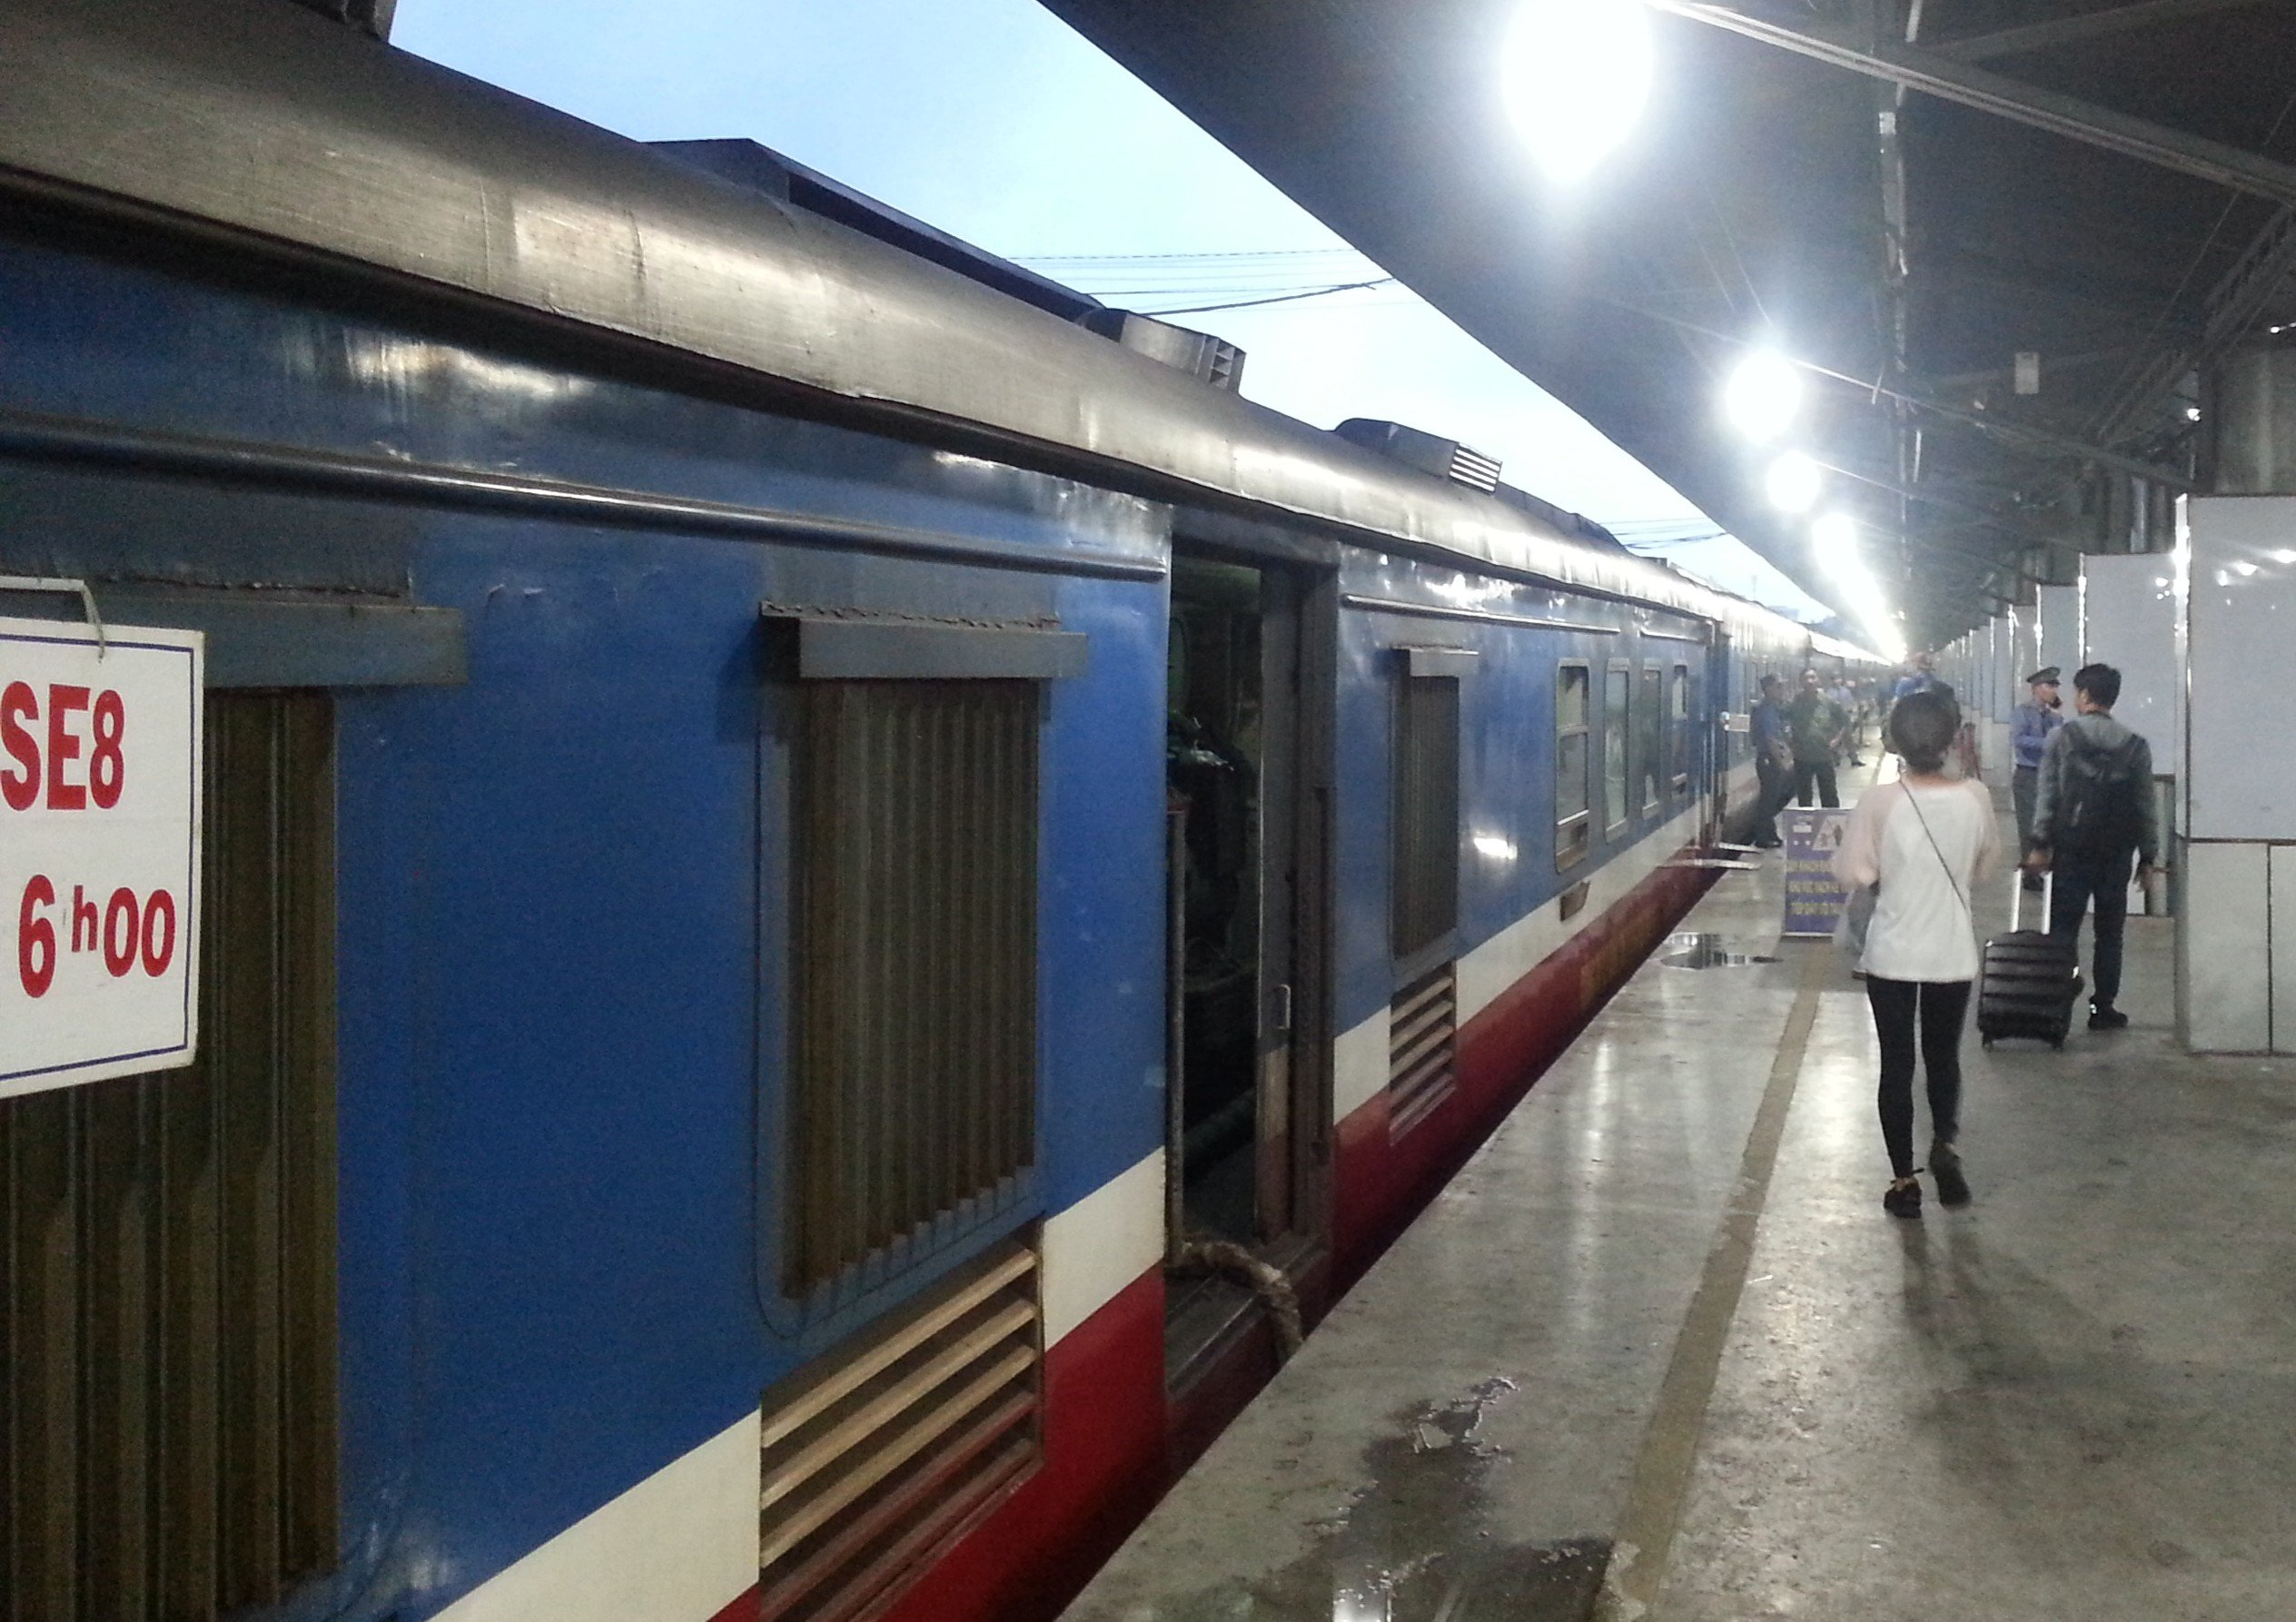 SE8 Train from Ho Chi Minh City to Nha Trang